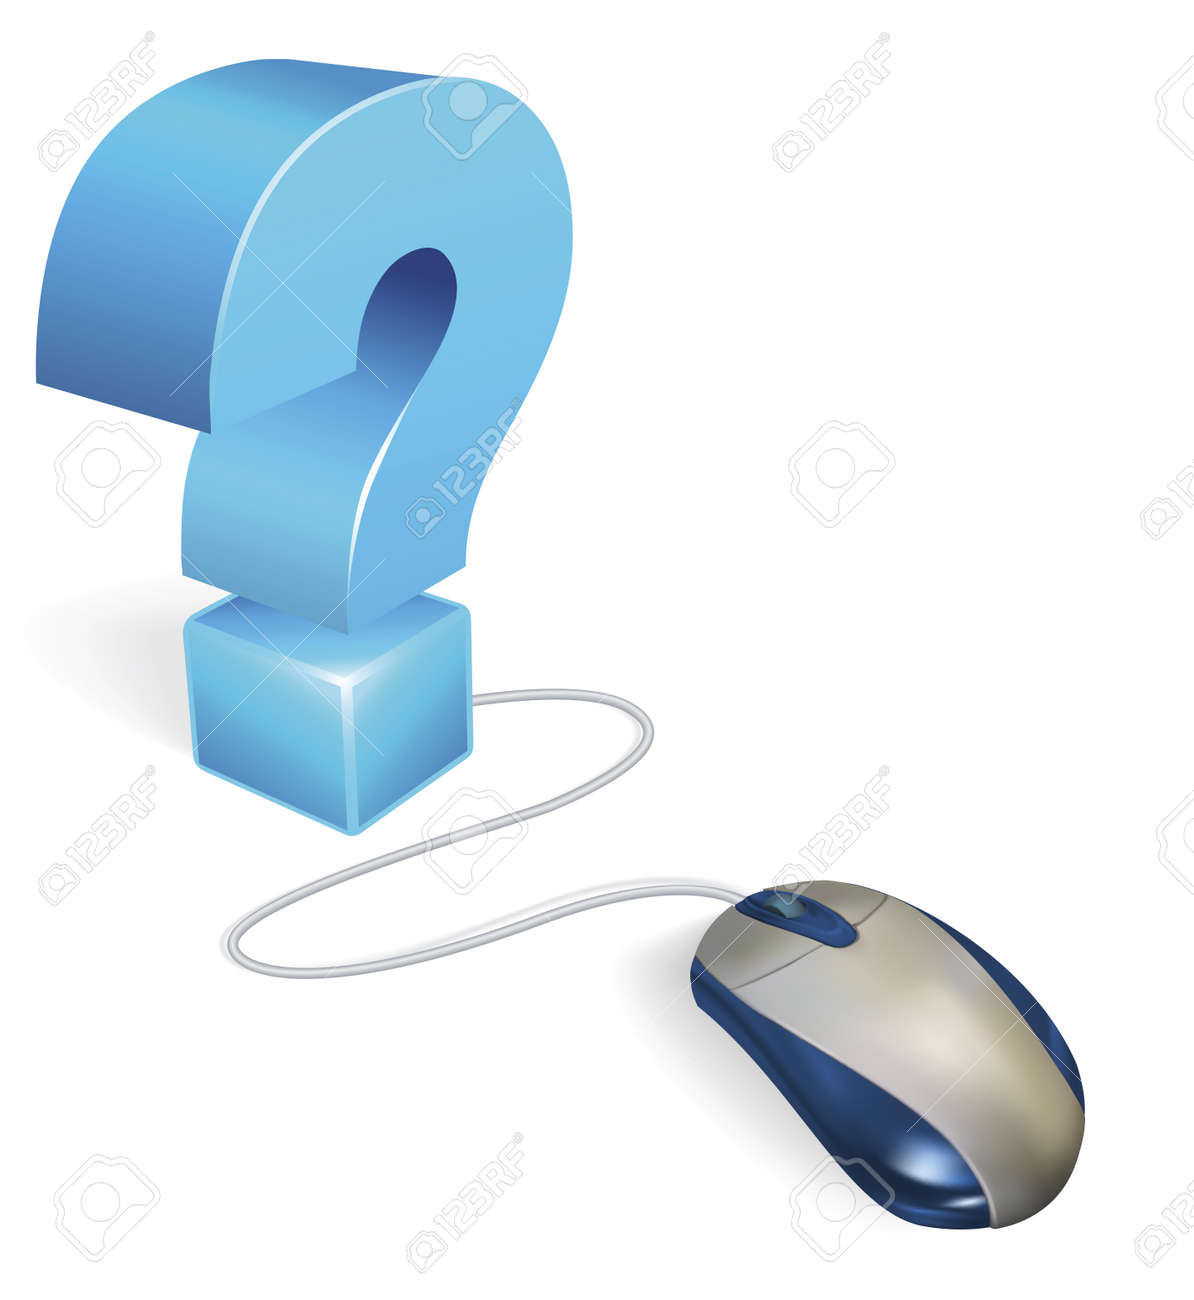 476b2cdcfb8 A computer mouse connected to a question mark. Internet concept for a faq  section or